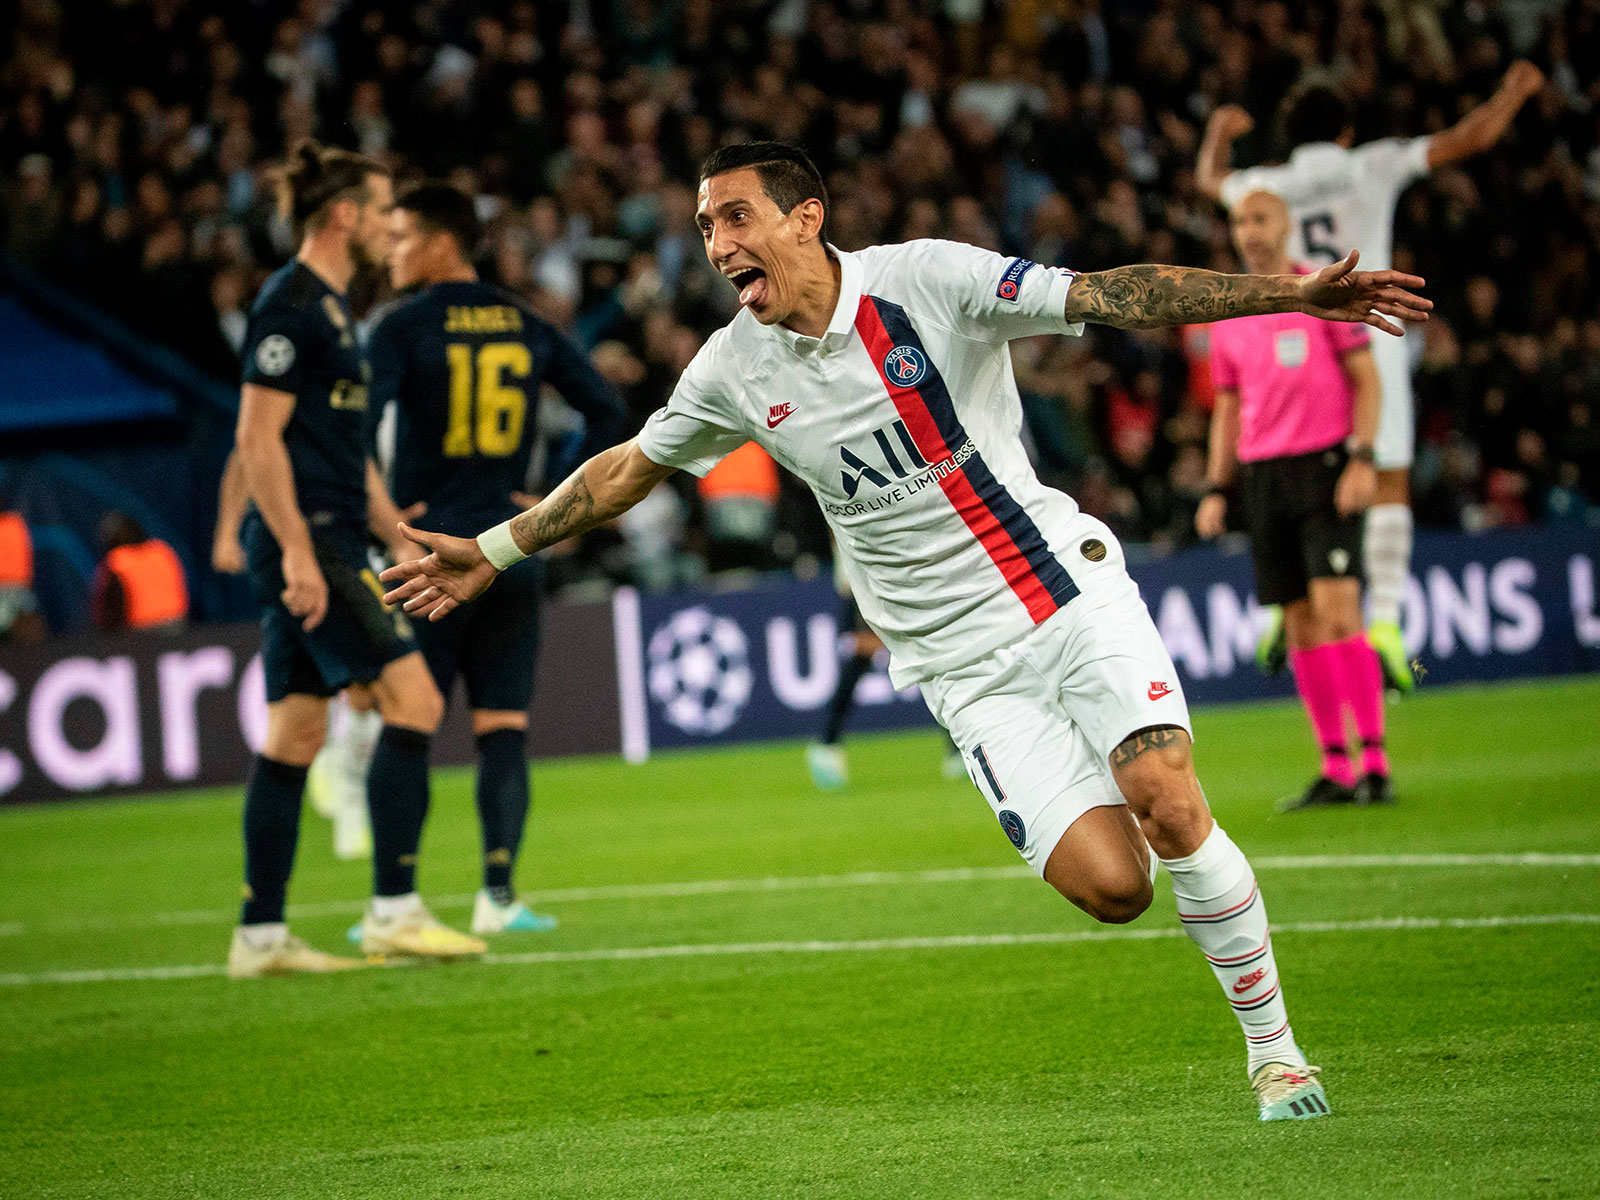 Angel Di Maria scores for PSG vs. Real Madrid